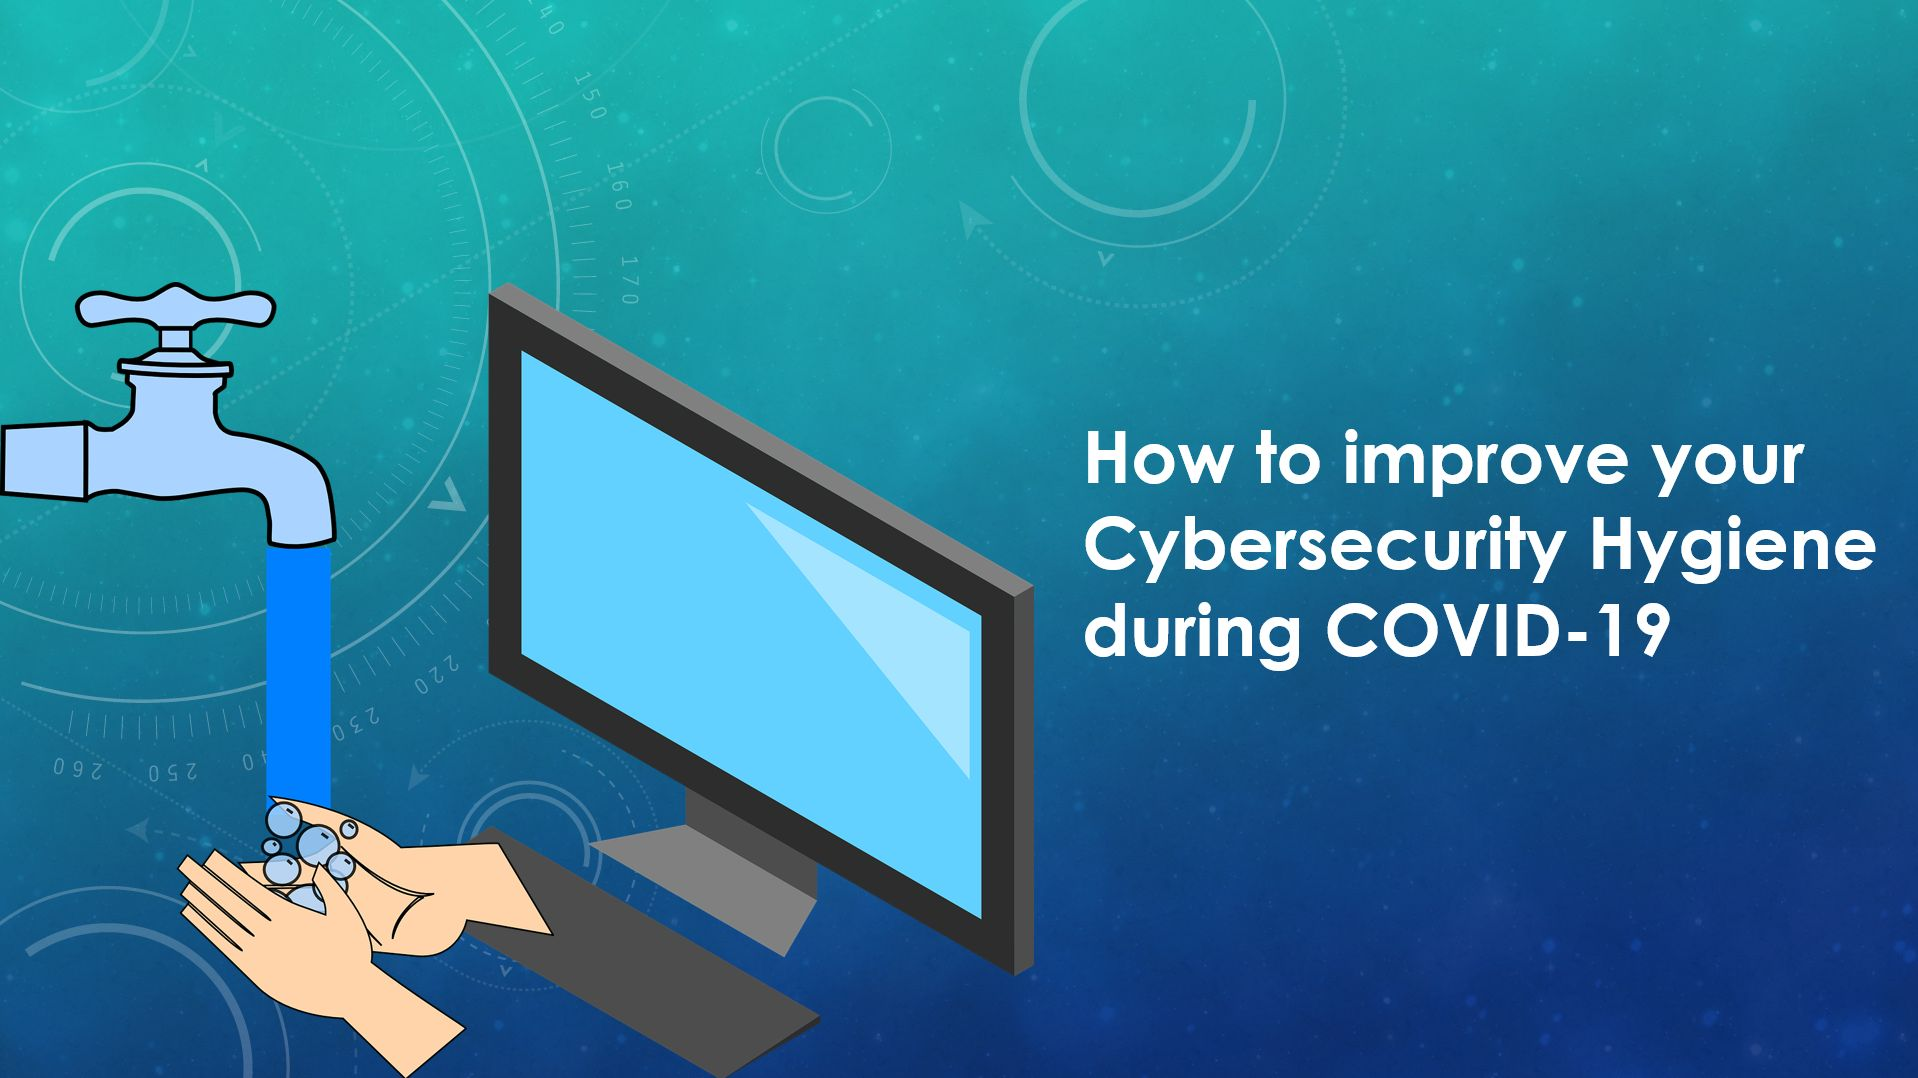 /washing-your-hands-online-applying-covid-19-lessons-to-cybersecurity-0yap31rt feature image